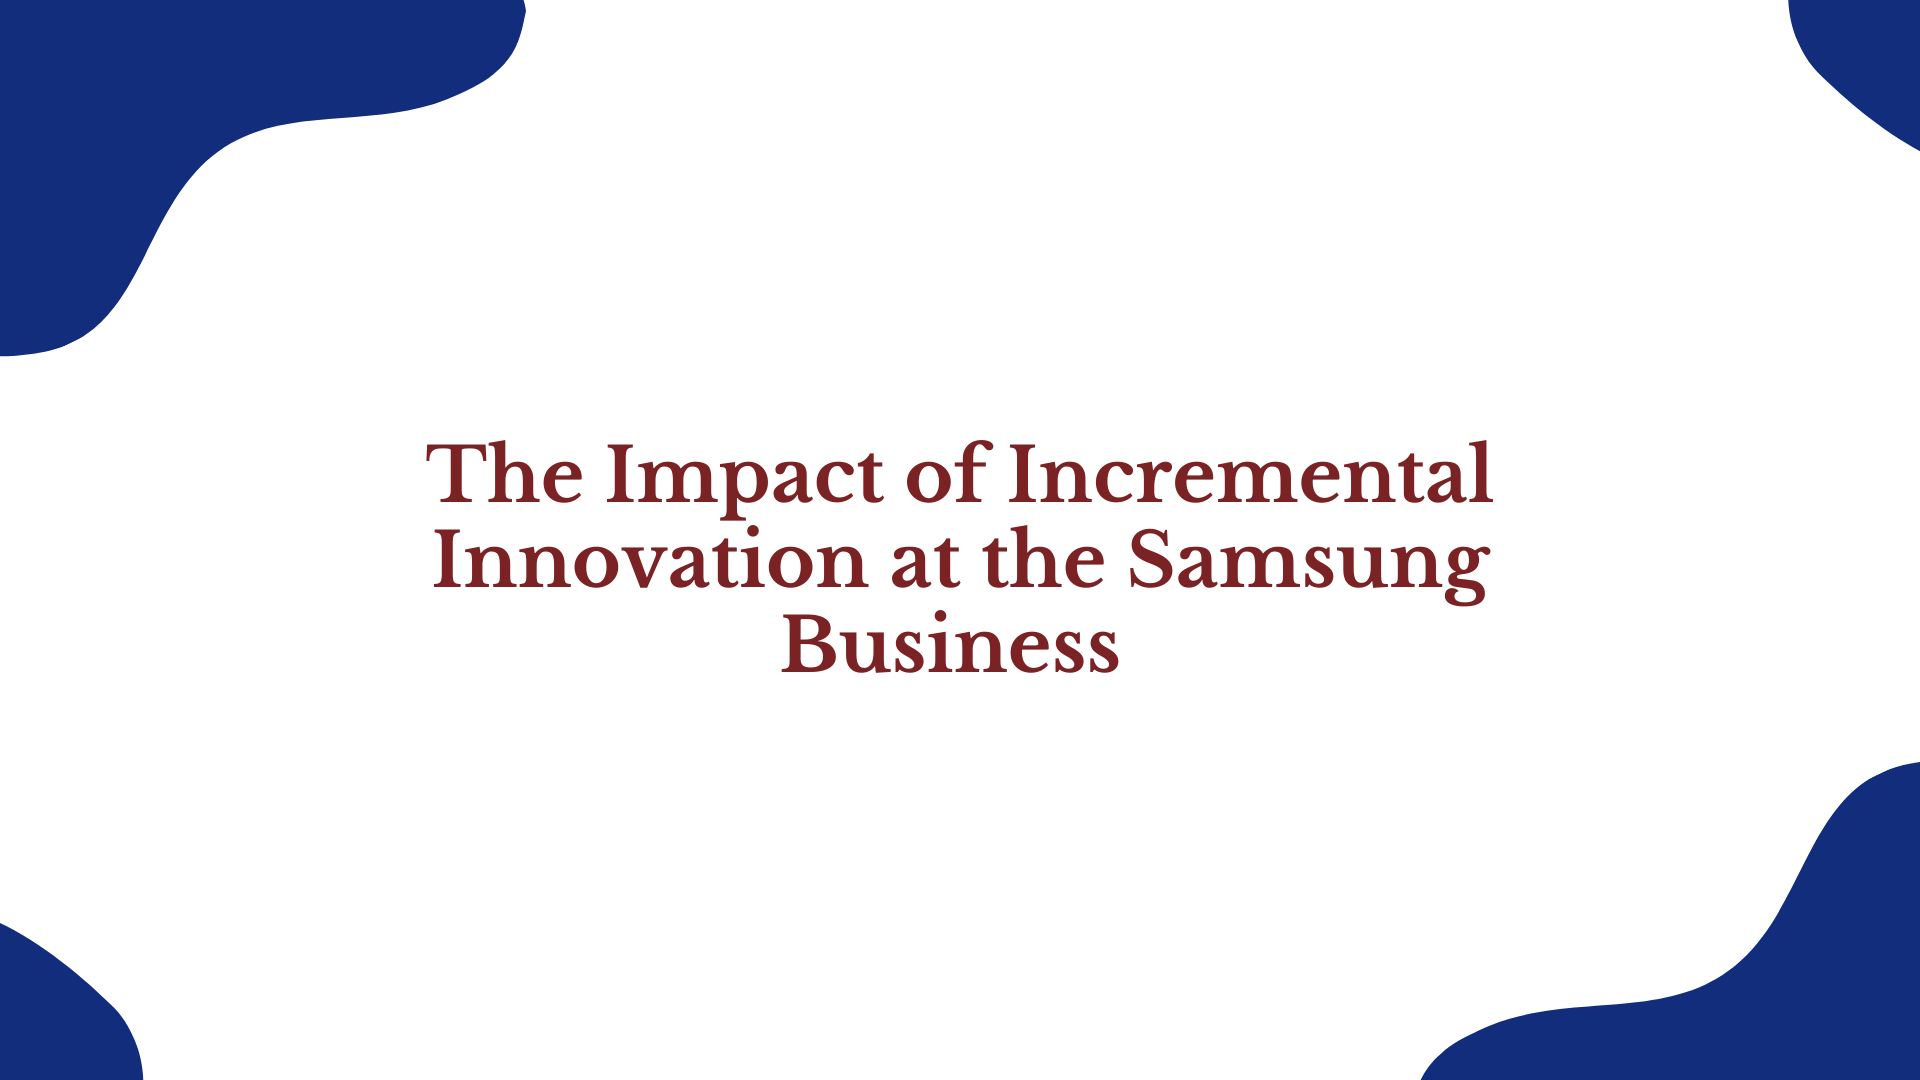 The Impact of Incremental innovation at the Samsung business